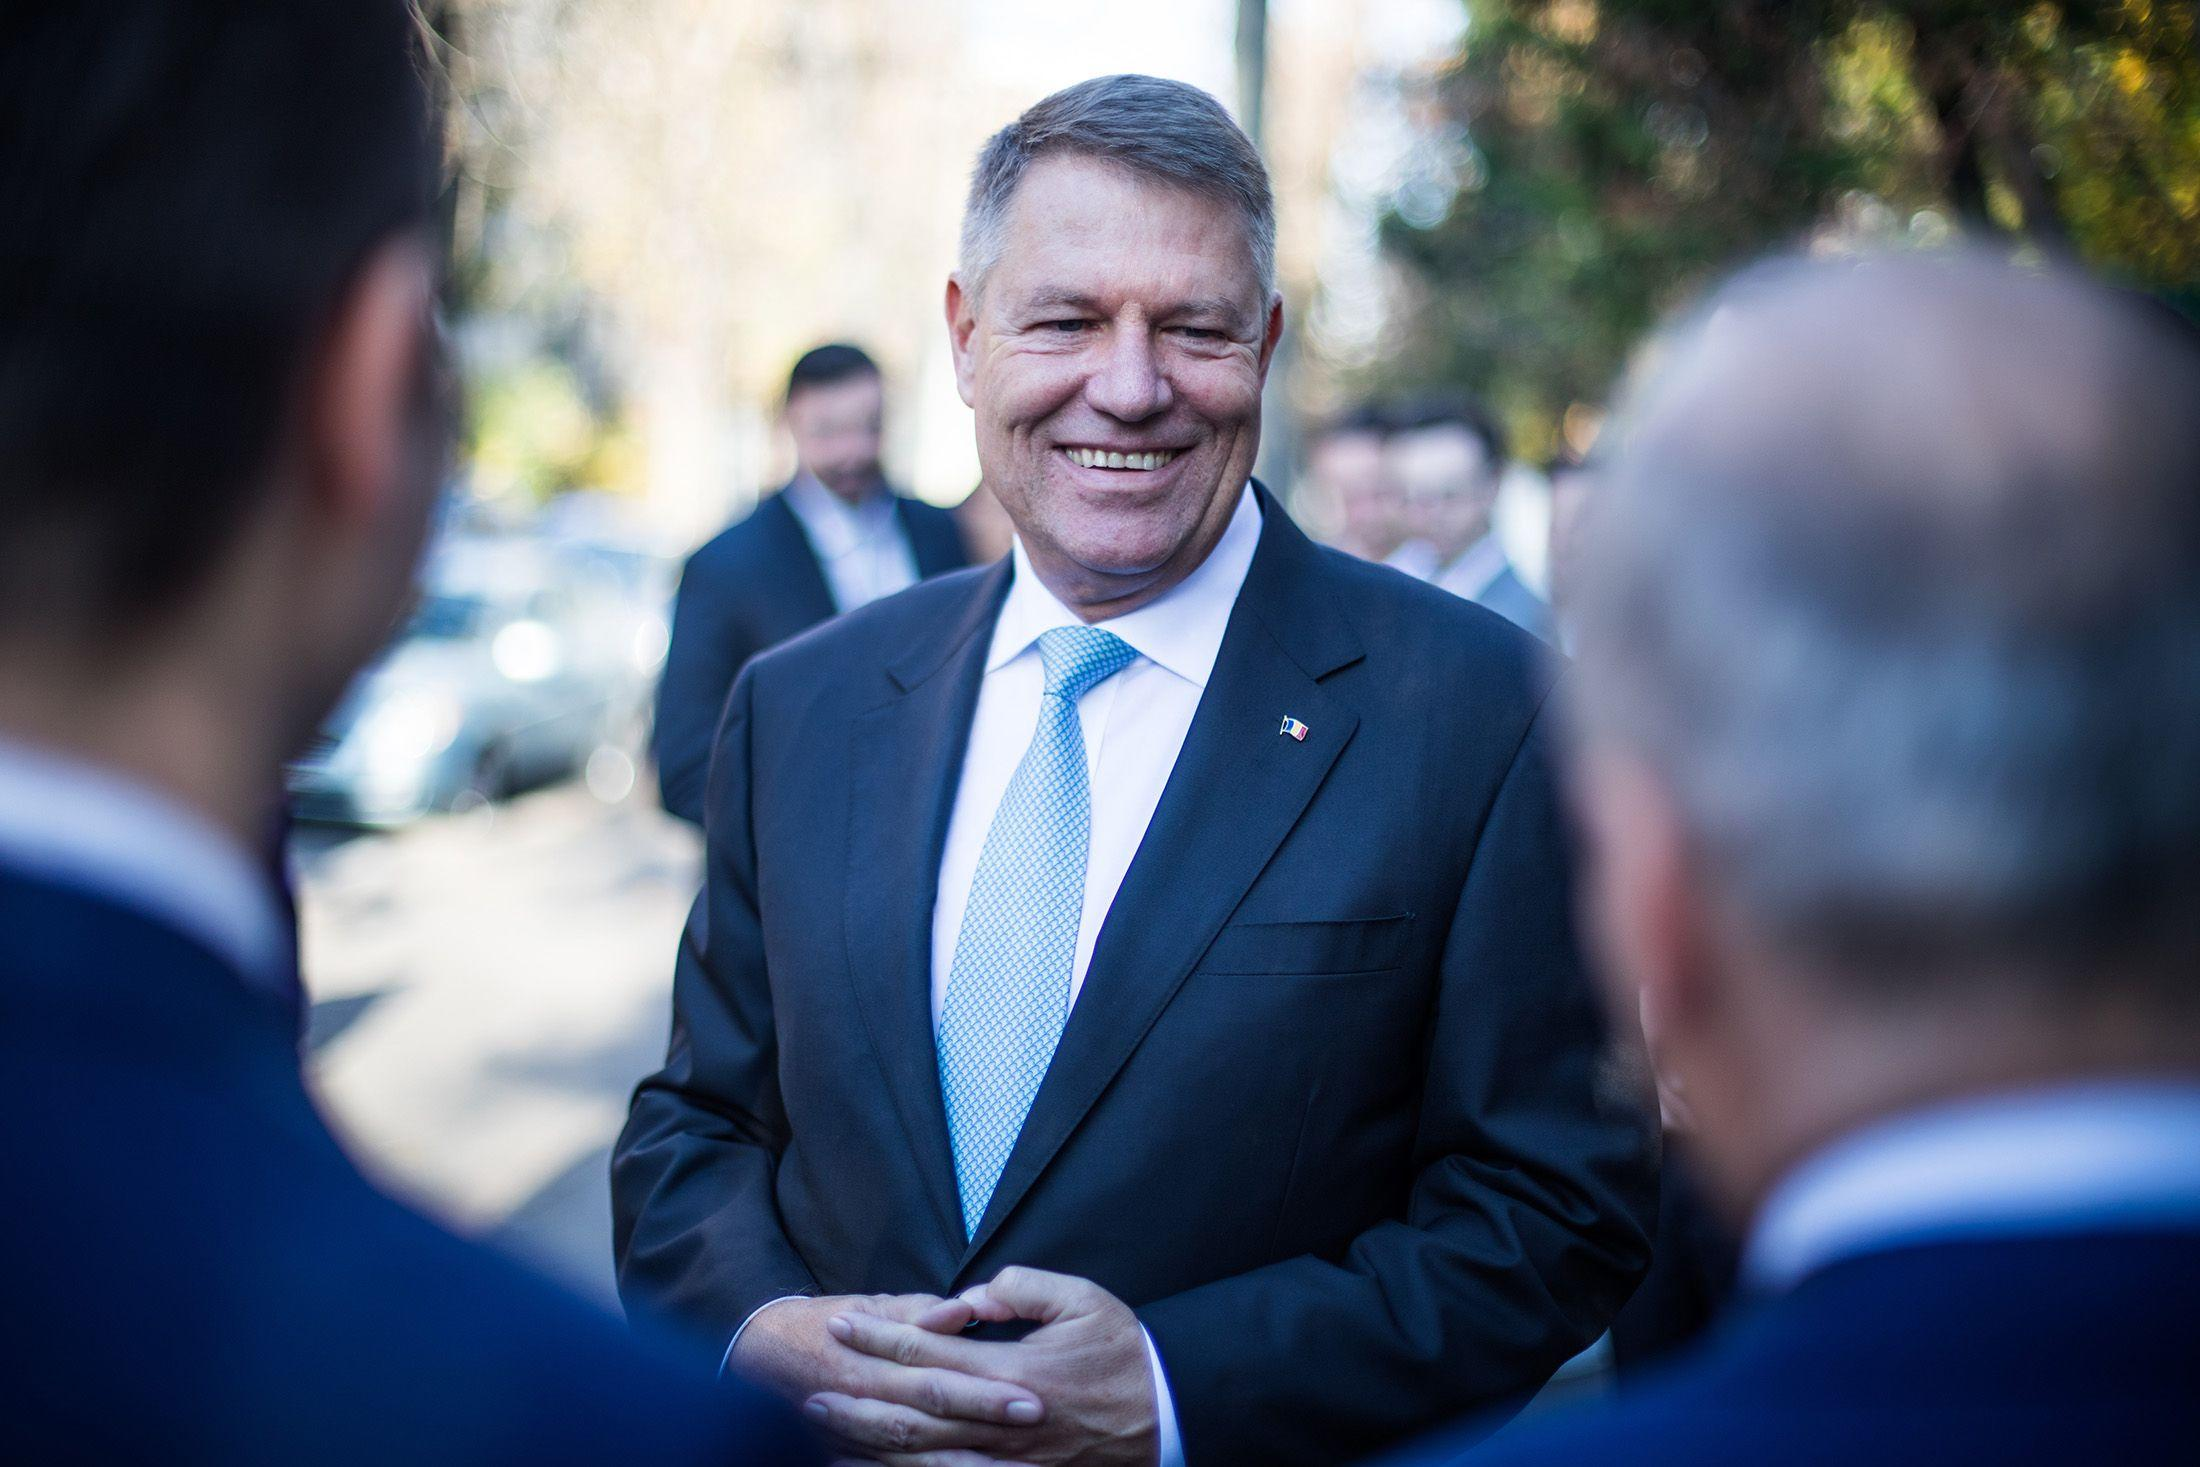 RFE/RL: Exit polls show Romania's Iohannis winning second presidential term